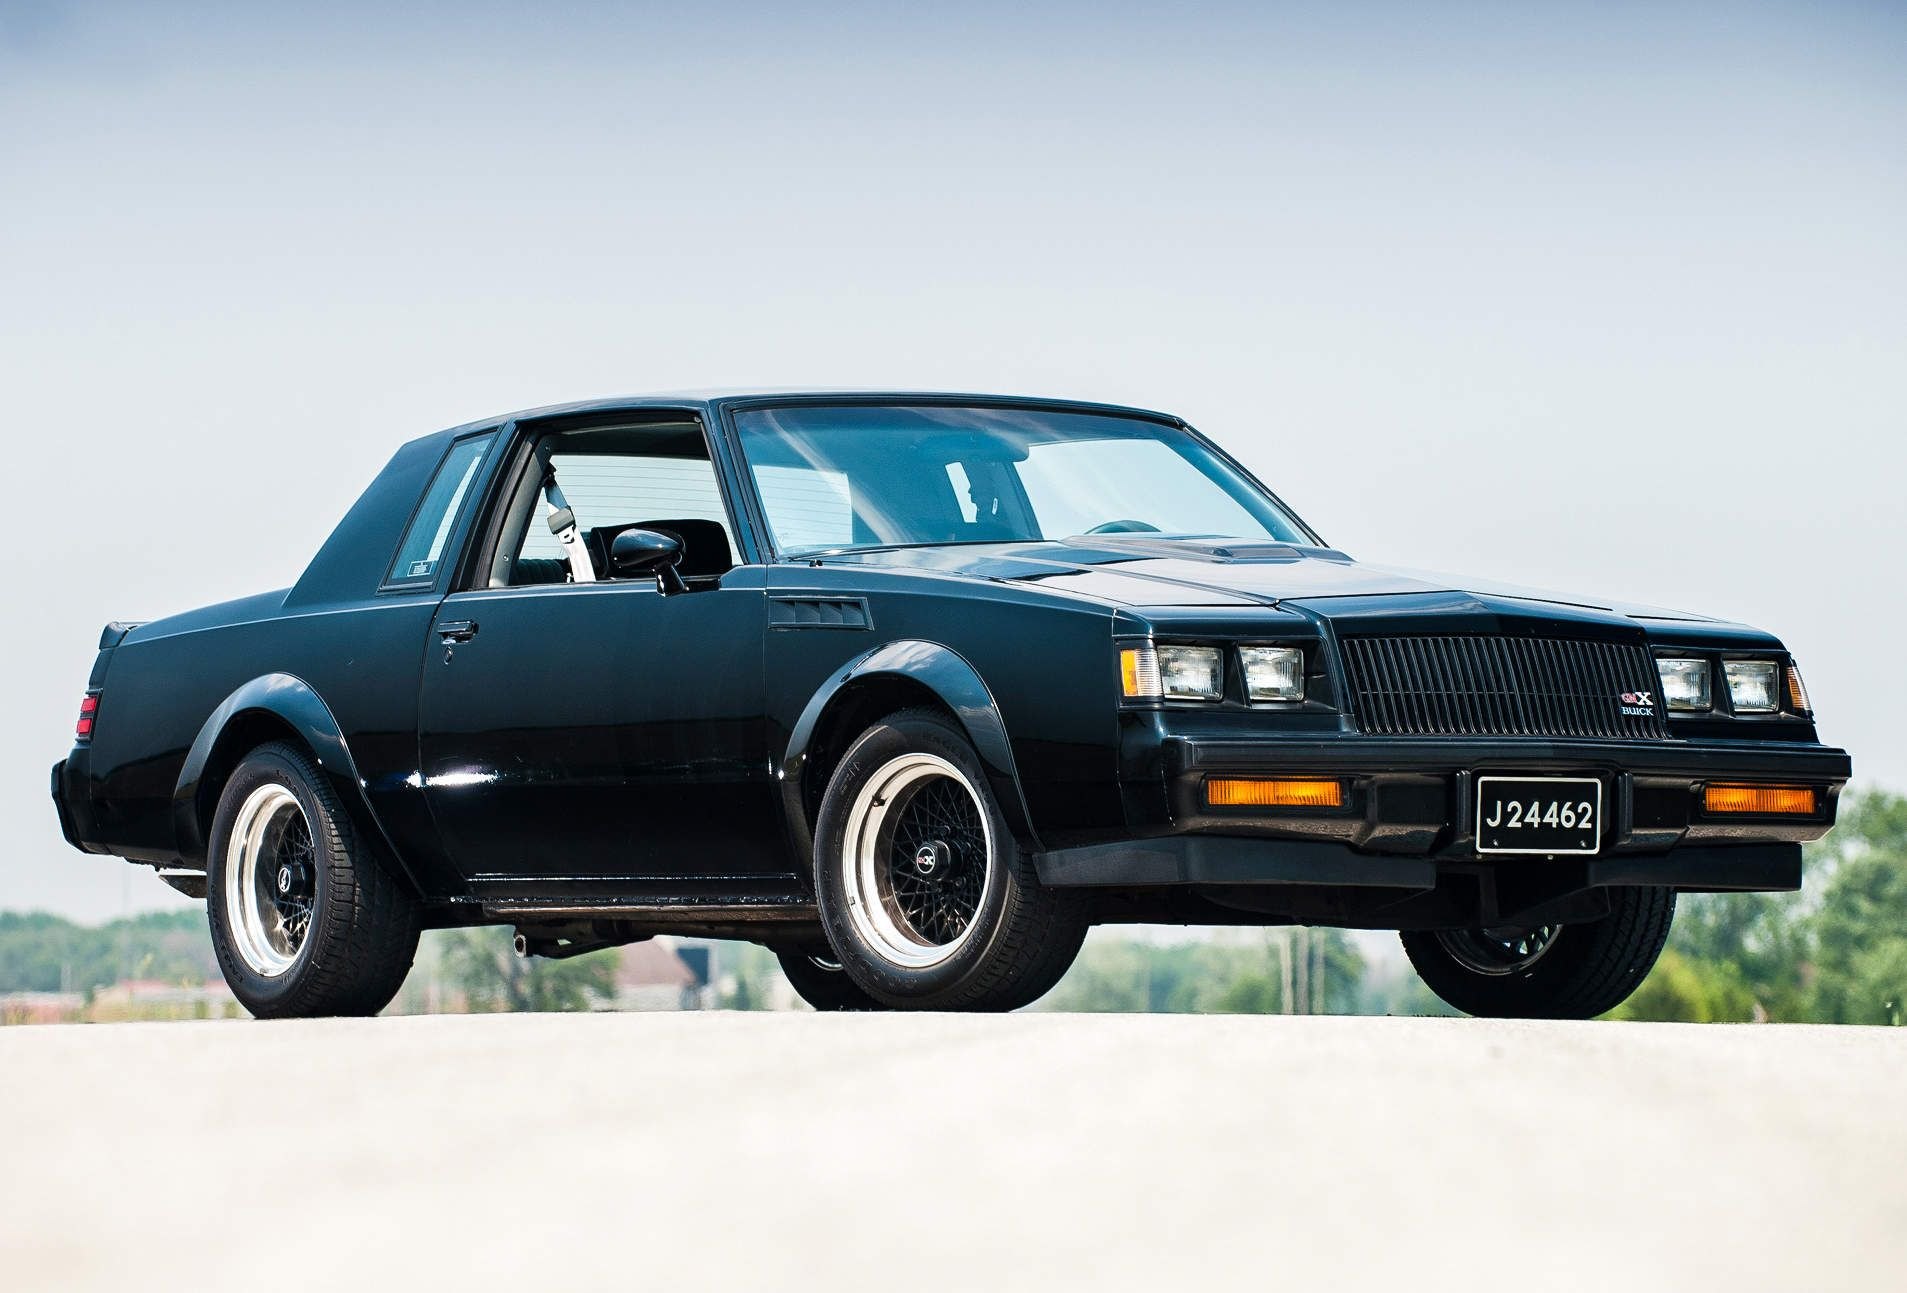 The 10 Best Cars of the 1980s (With images) Buick grand